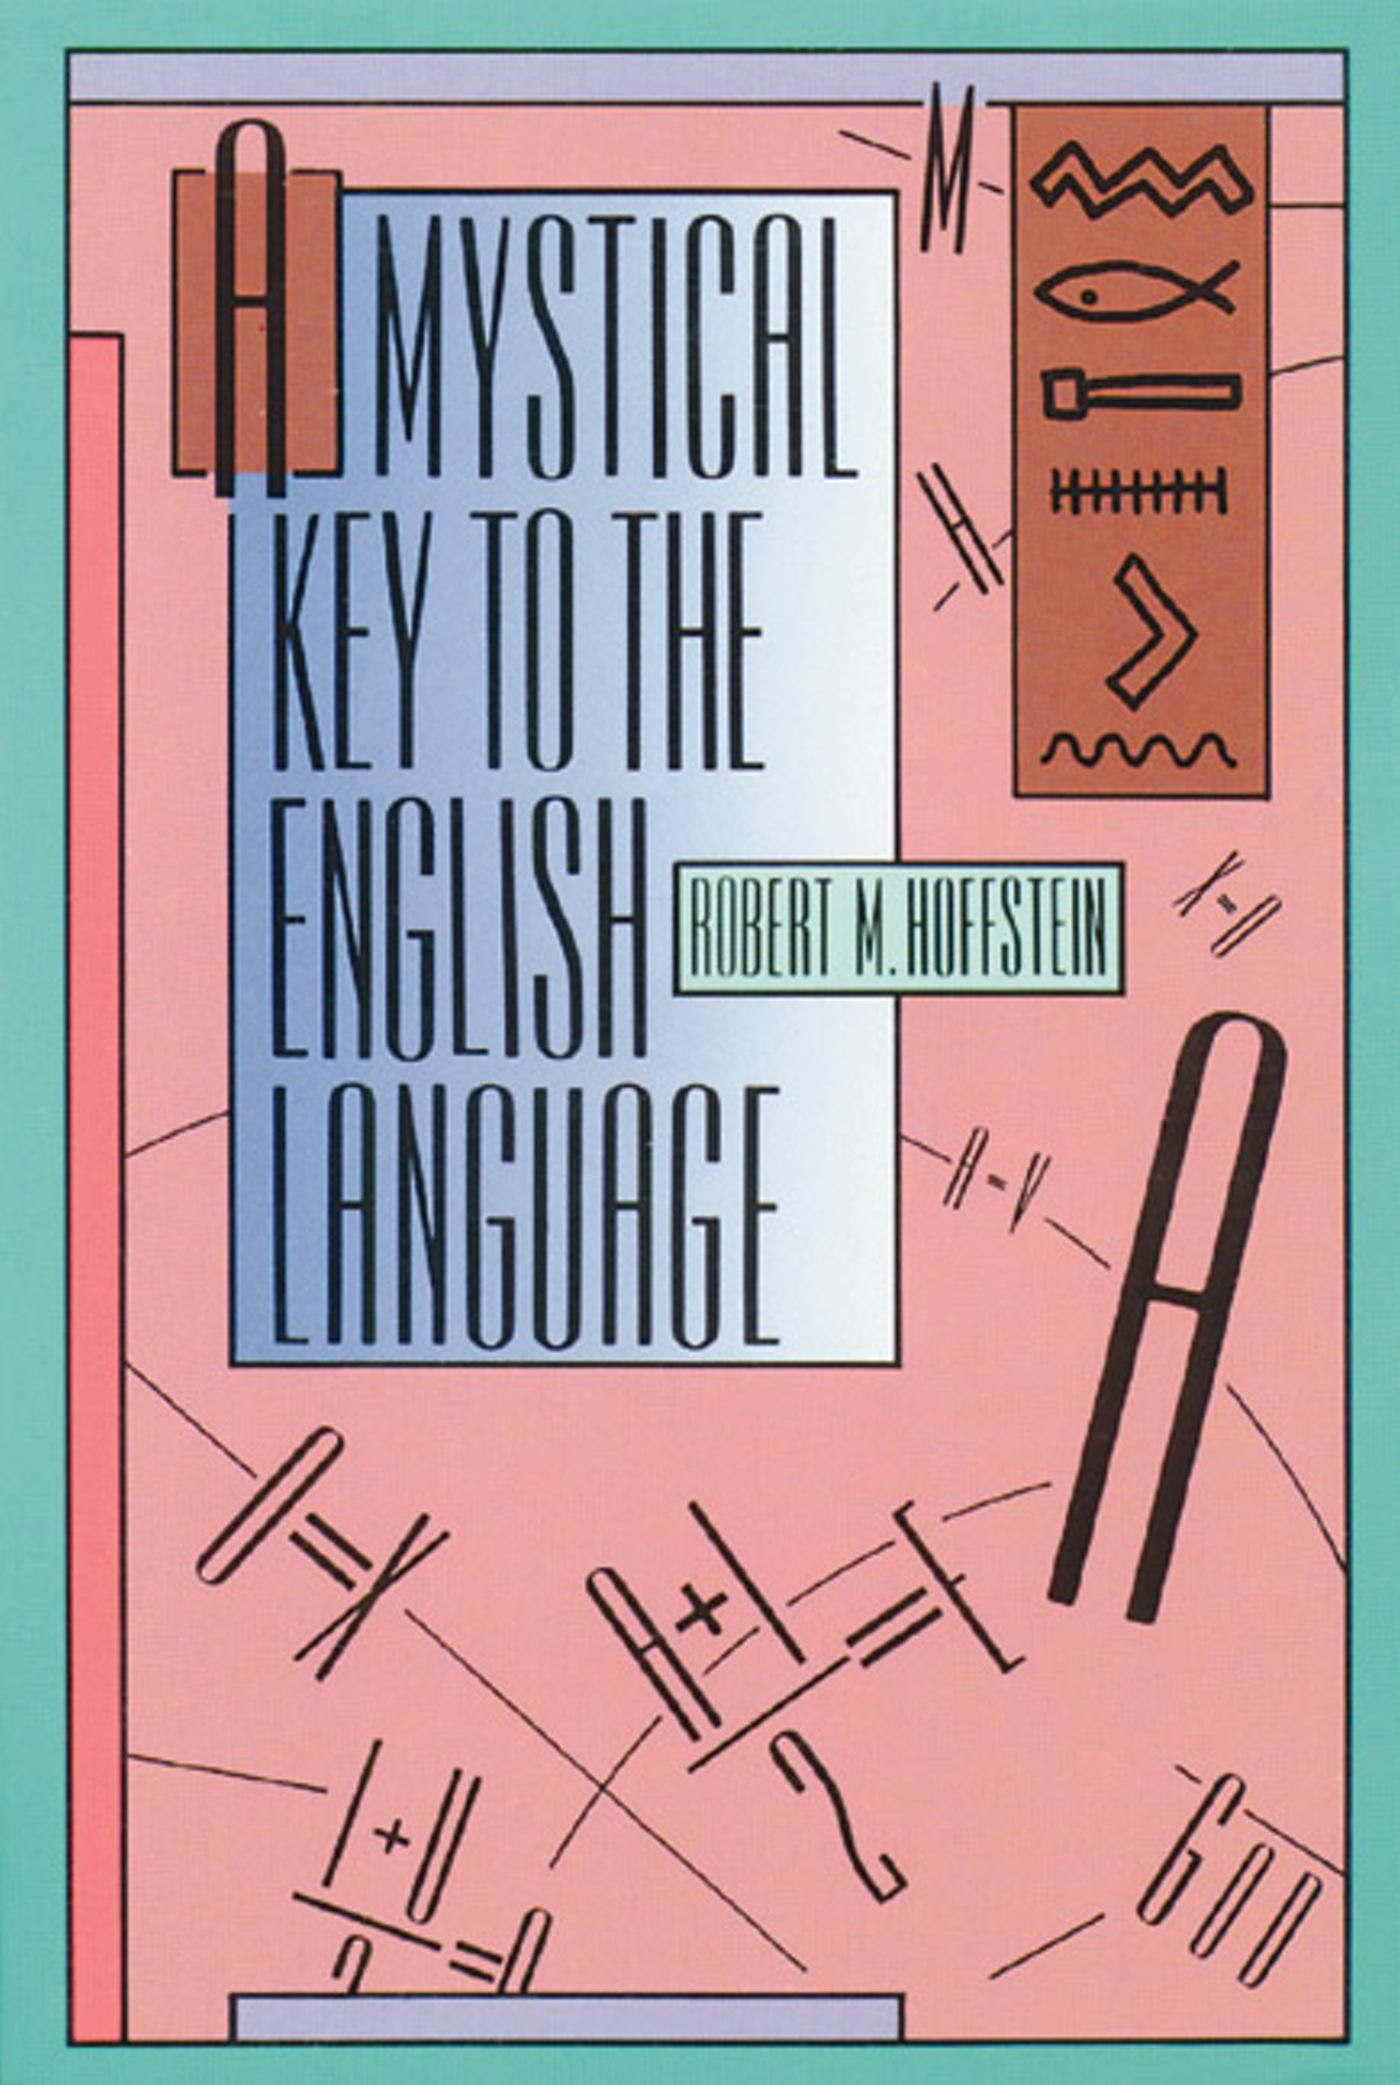 A-mystical-key-to-the-english-language-9780892813094_hr